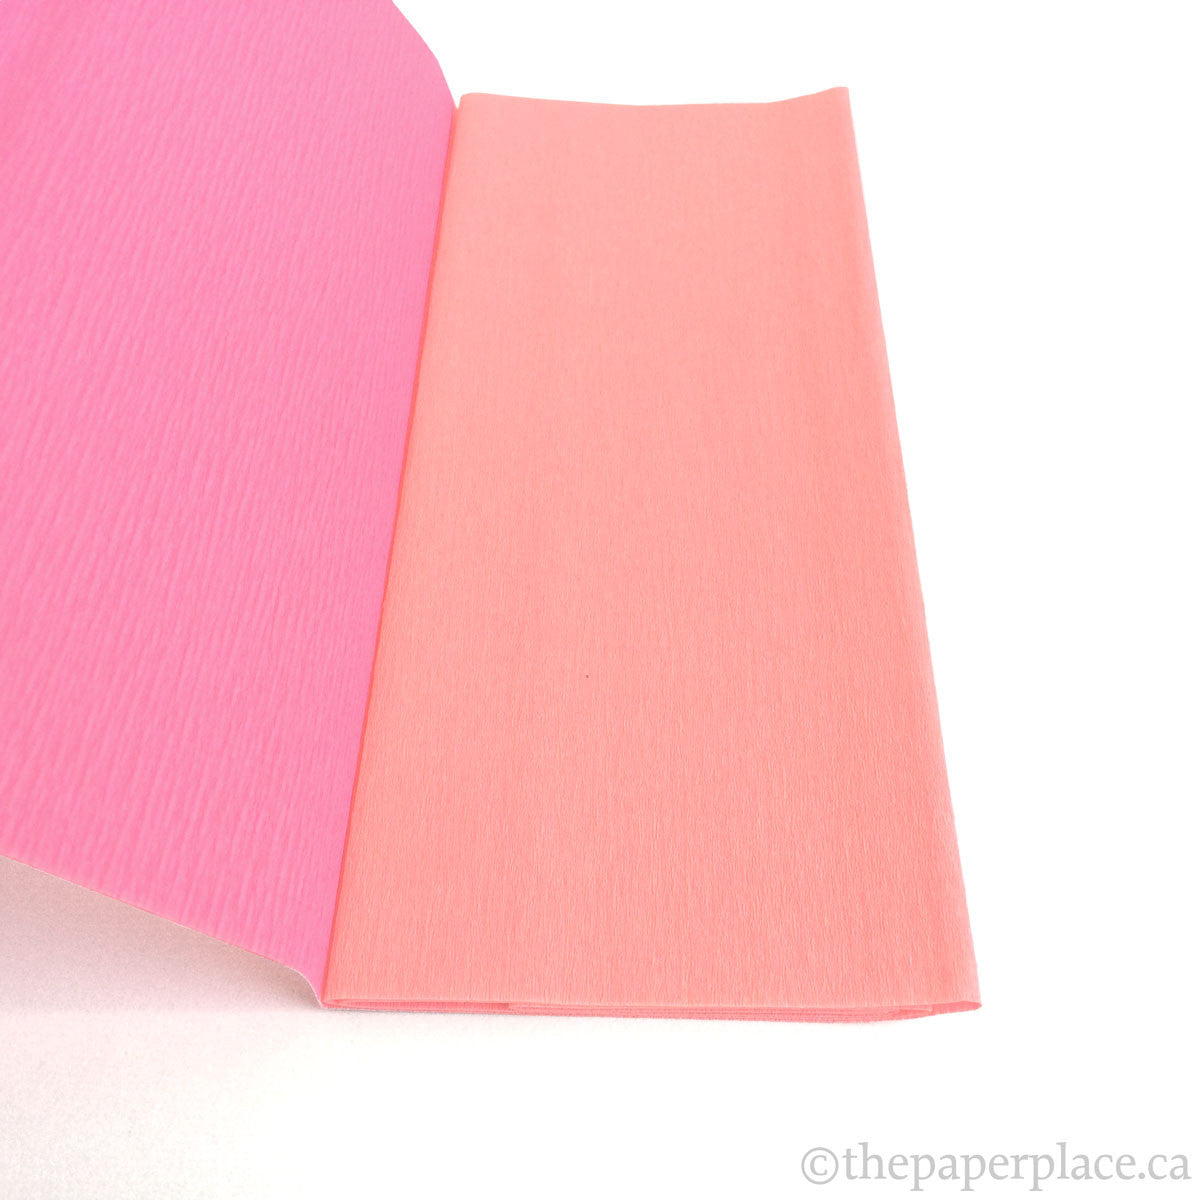 Double-Sided Crepe - Light Rose Pink